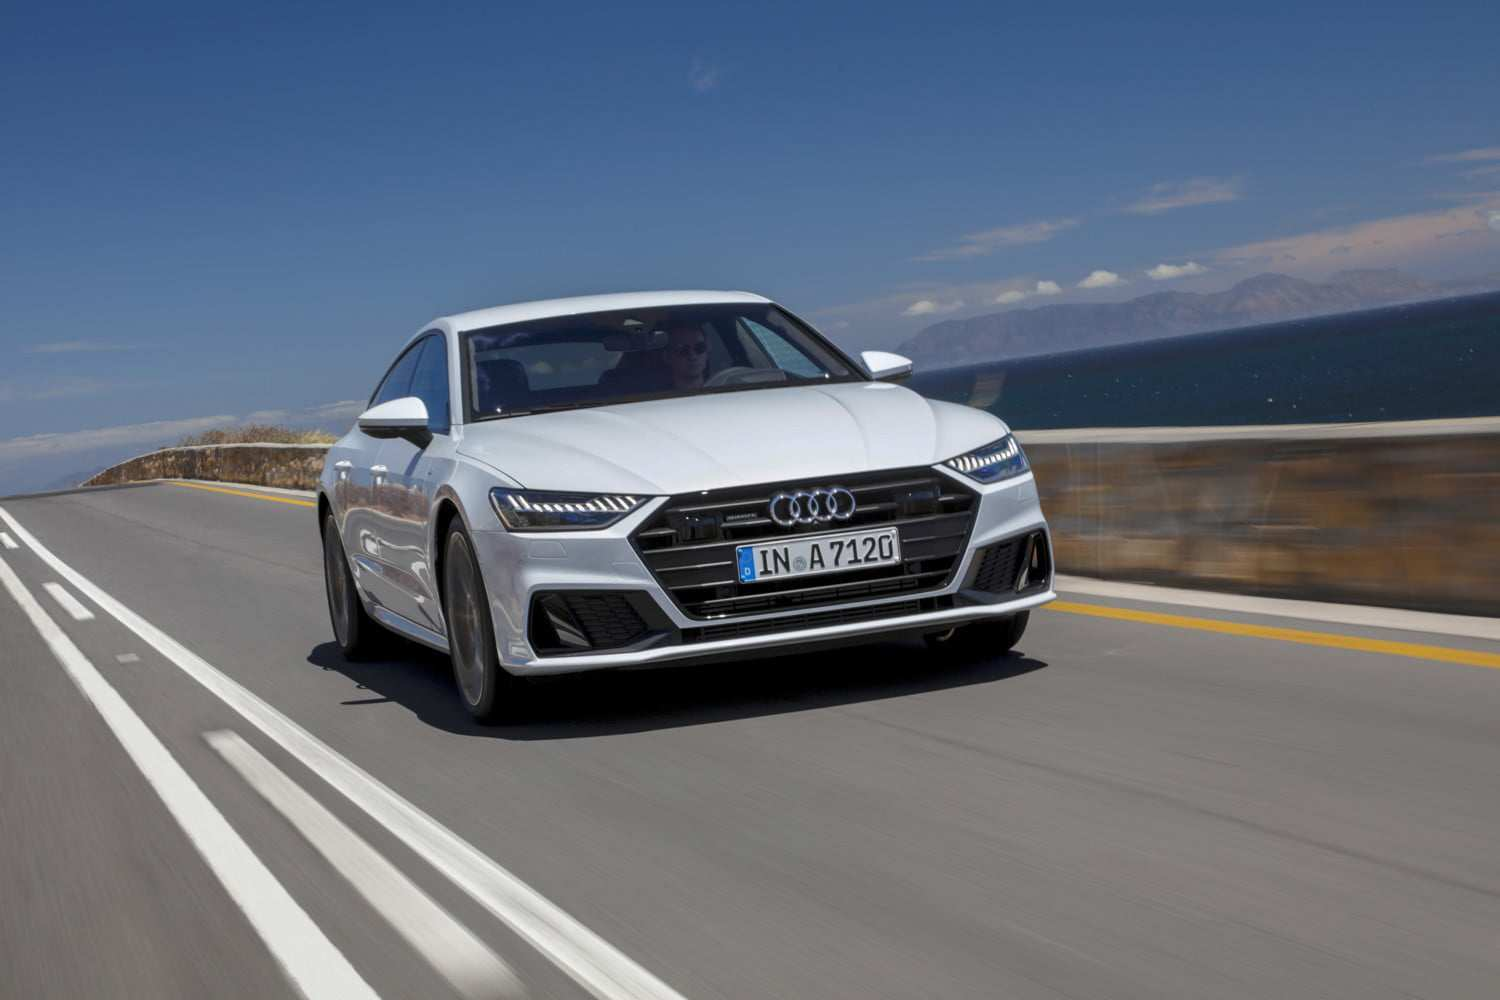 12 Great The Audi 2019 Lights Release Specs And Review Prices for The Audi 2019 Lights Release Specs And Review